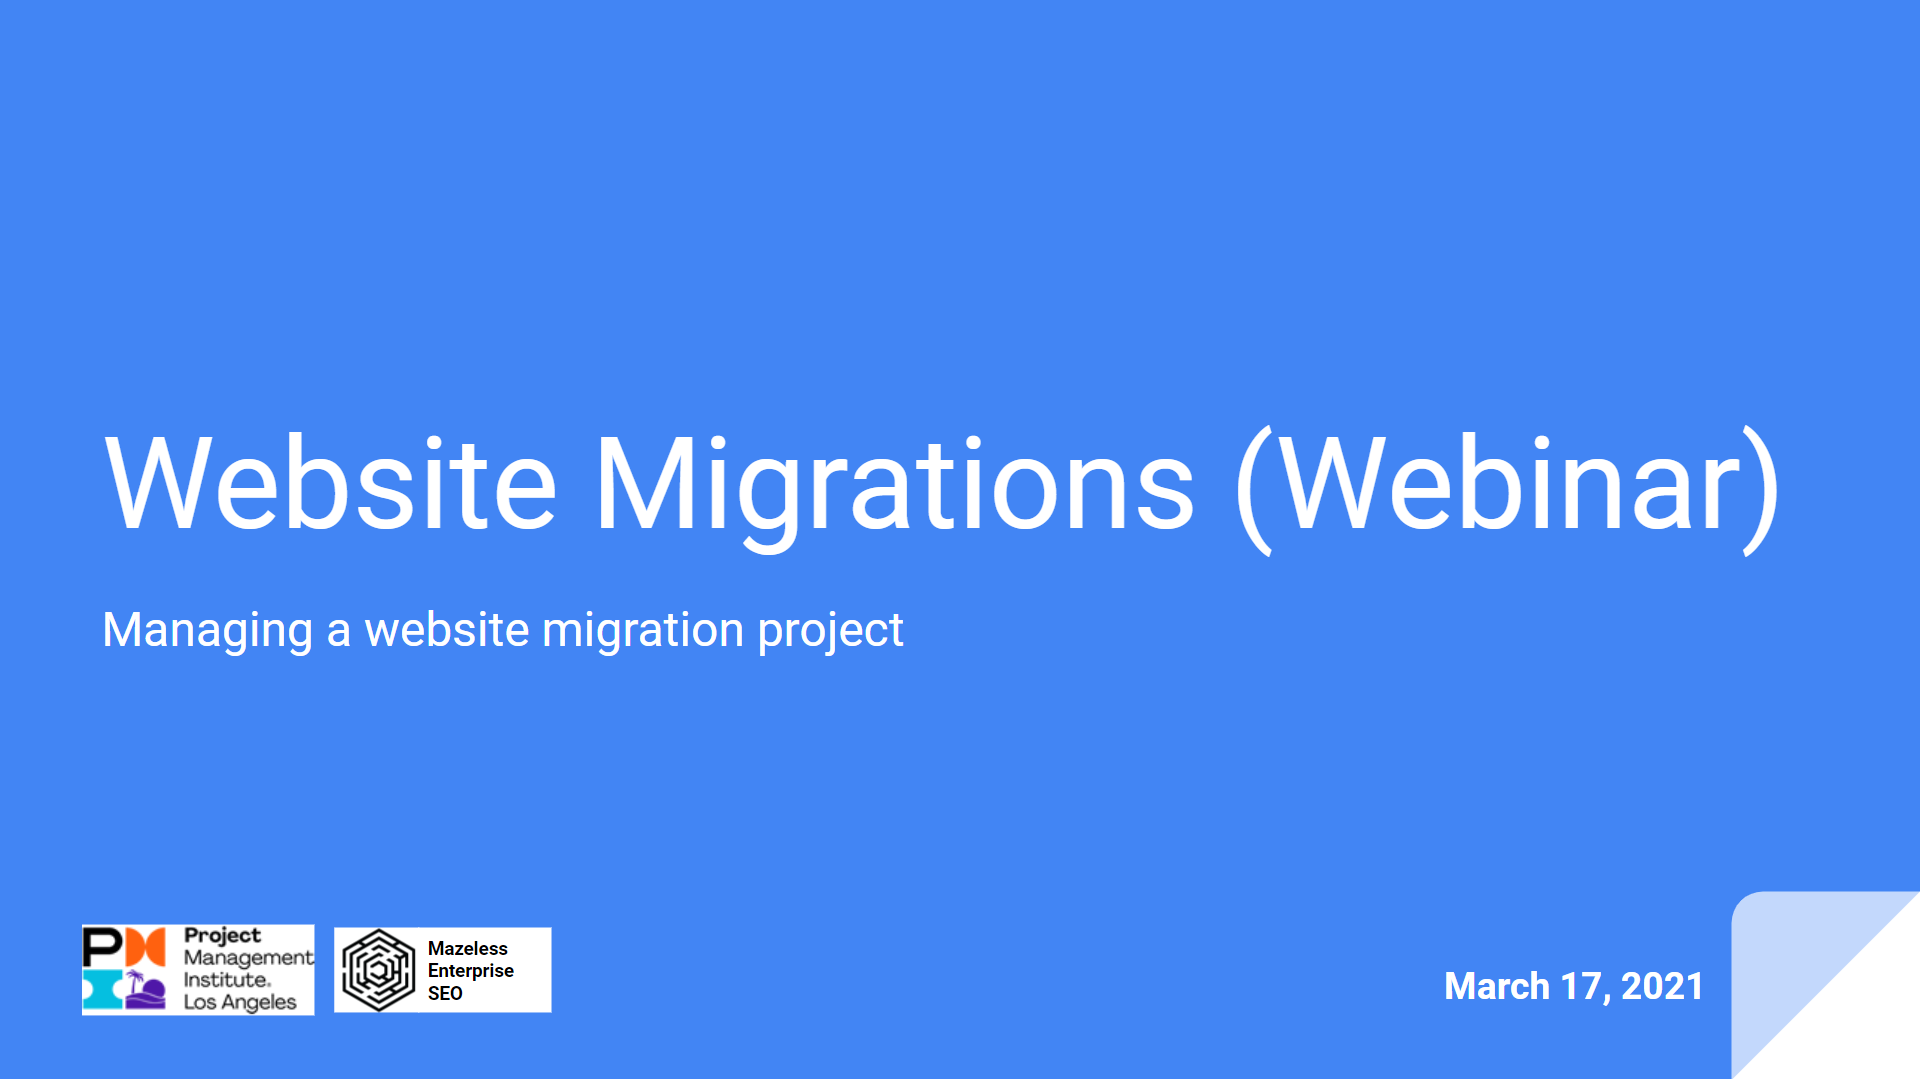 Website Migration Webinar Screenshot